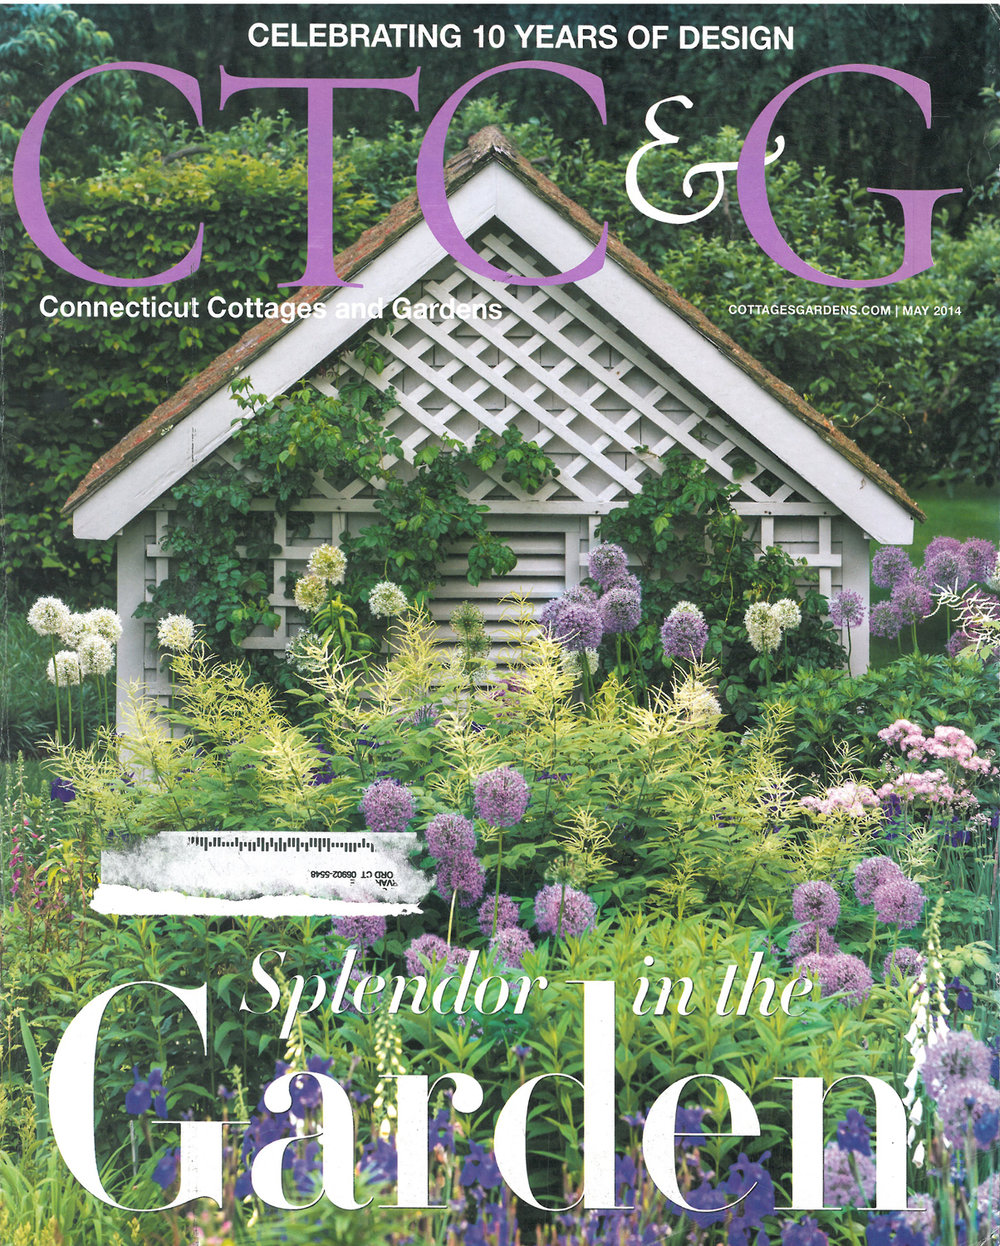 CT Cottages & Gardens May 2014